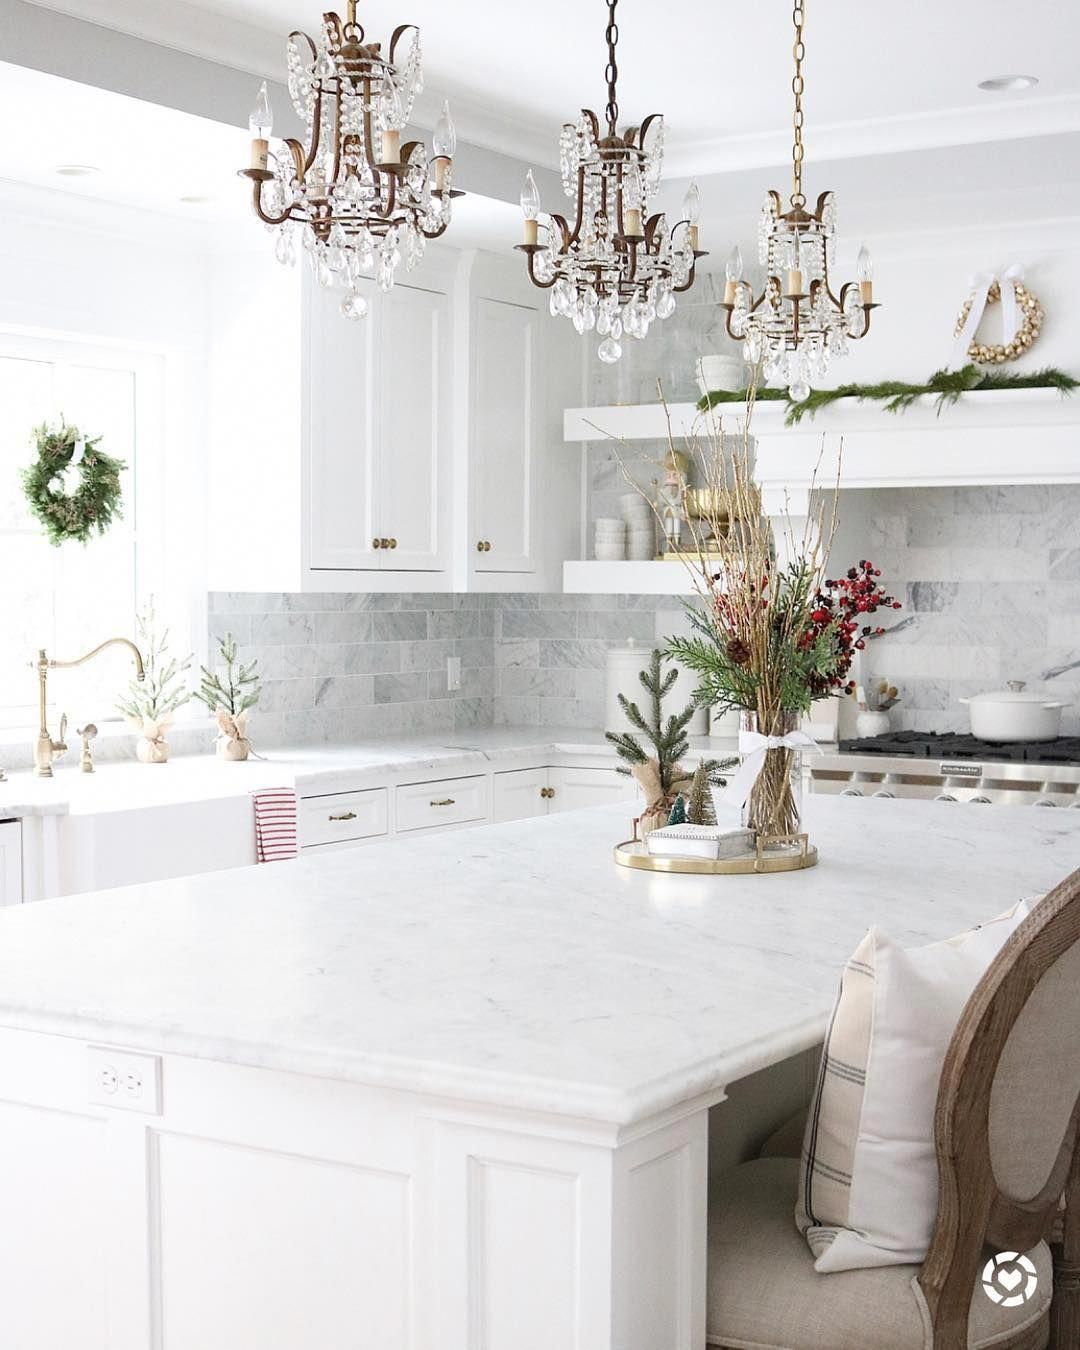 3 Crystal Chandelier Pendants Above White Marble Kitchen Island